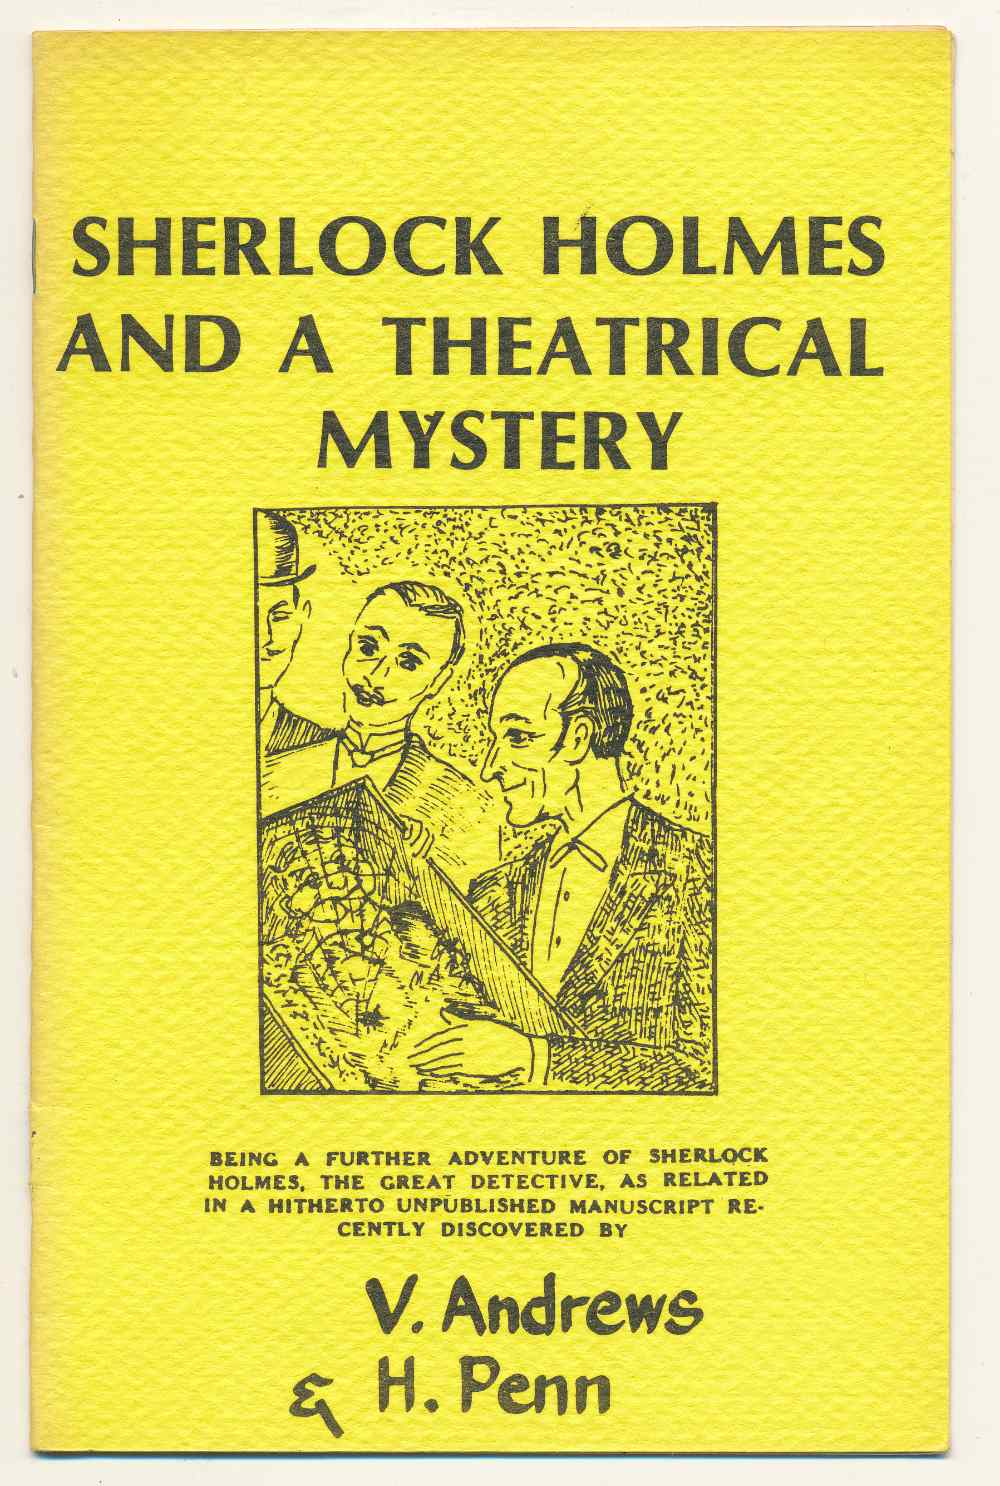 Sherlock Holmes and a theatrical mystery : being a further adventure of Sherlock Holmes, the great detective, as related in a hitherto unpublished manuscript recently discovered